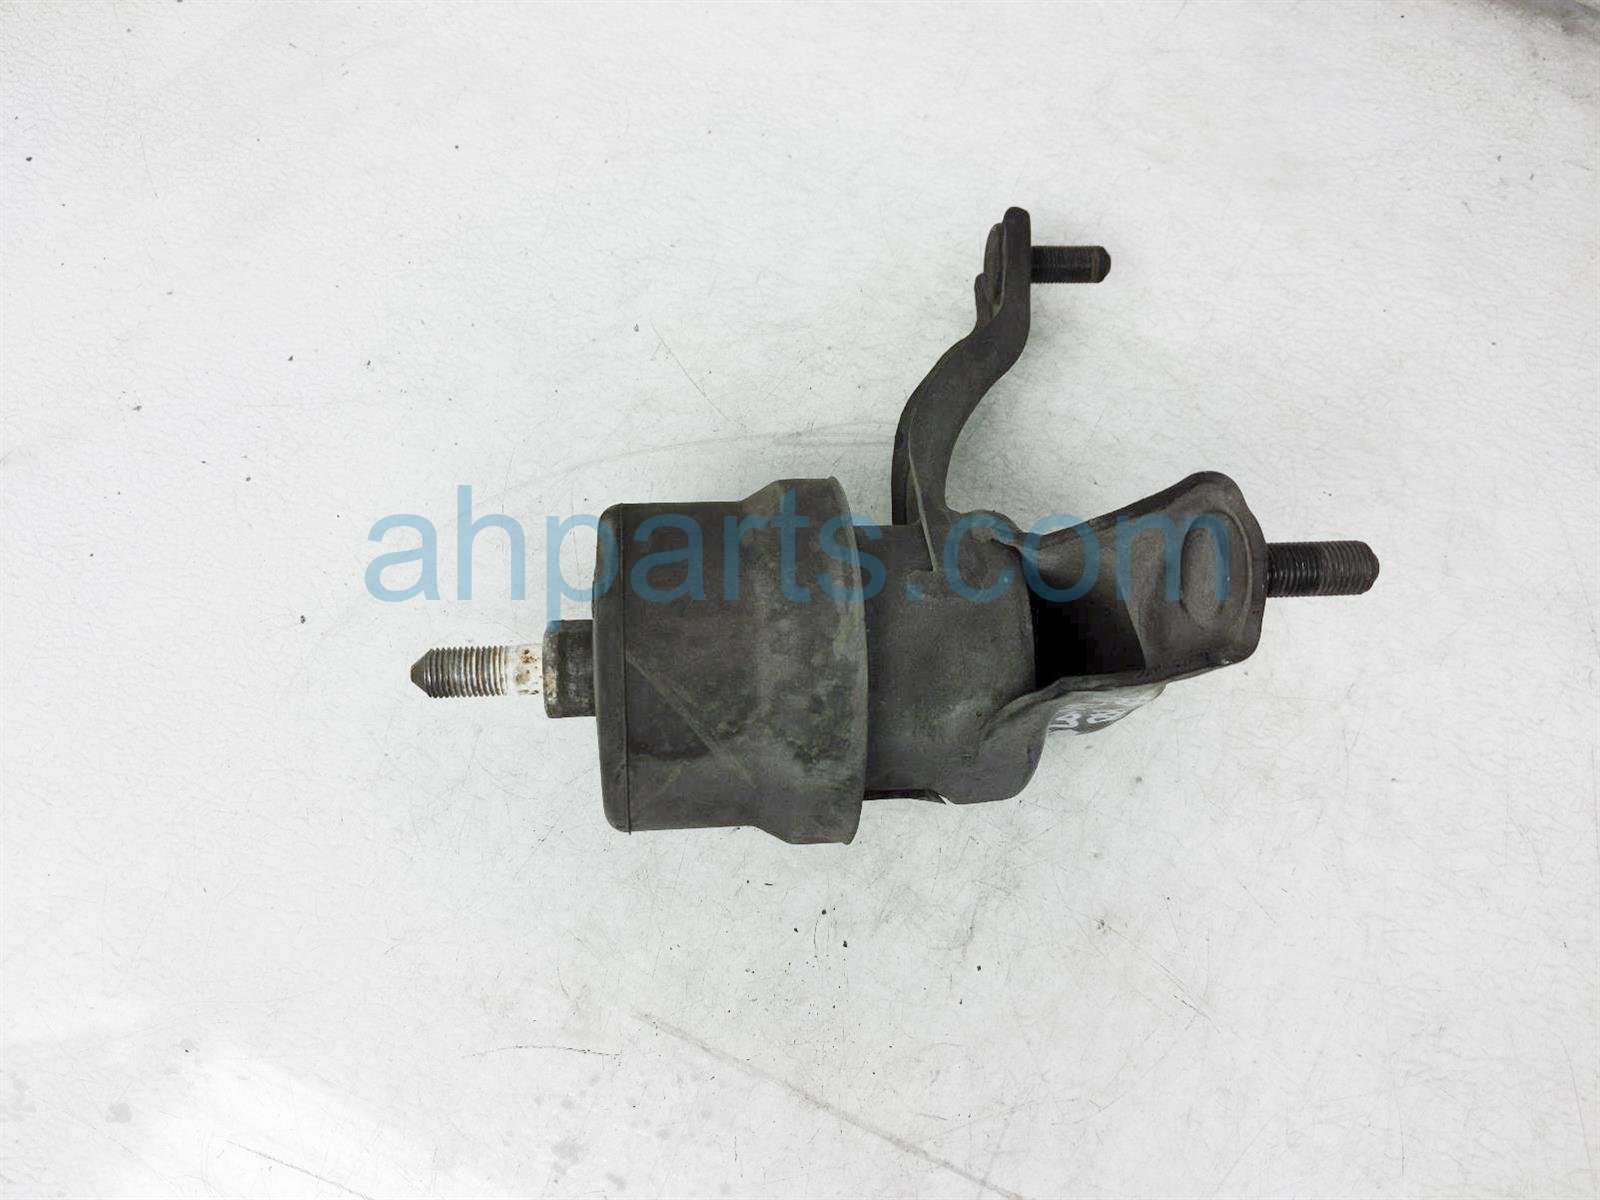 2013 Toyota Sienna Engine/motor Passenger Side Engine Mount 12362 0P051 Replacement